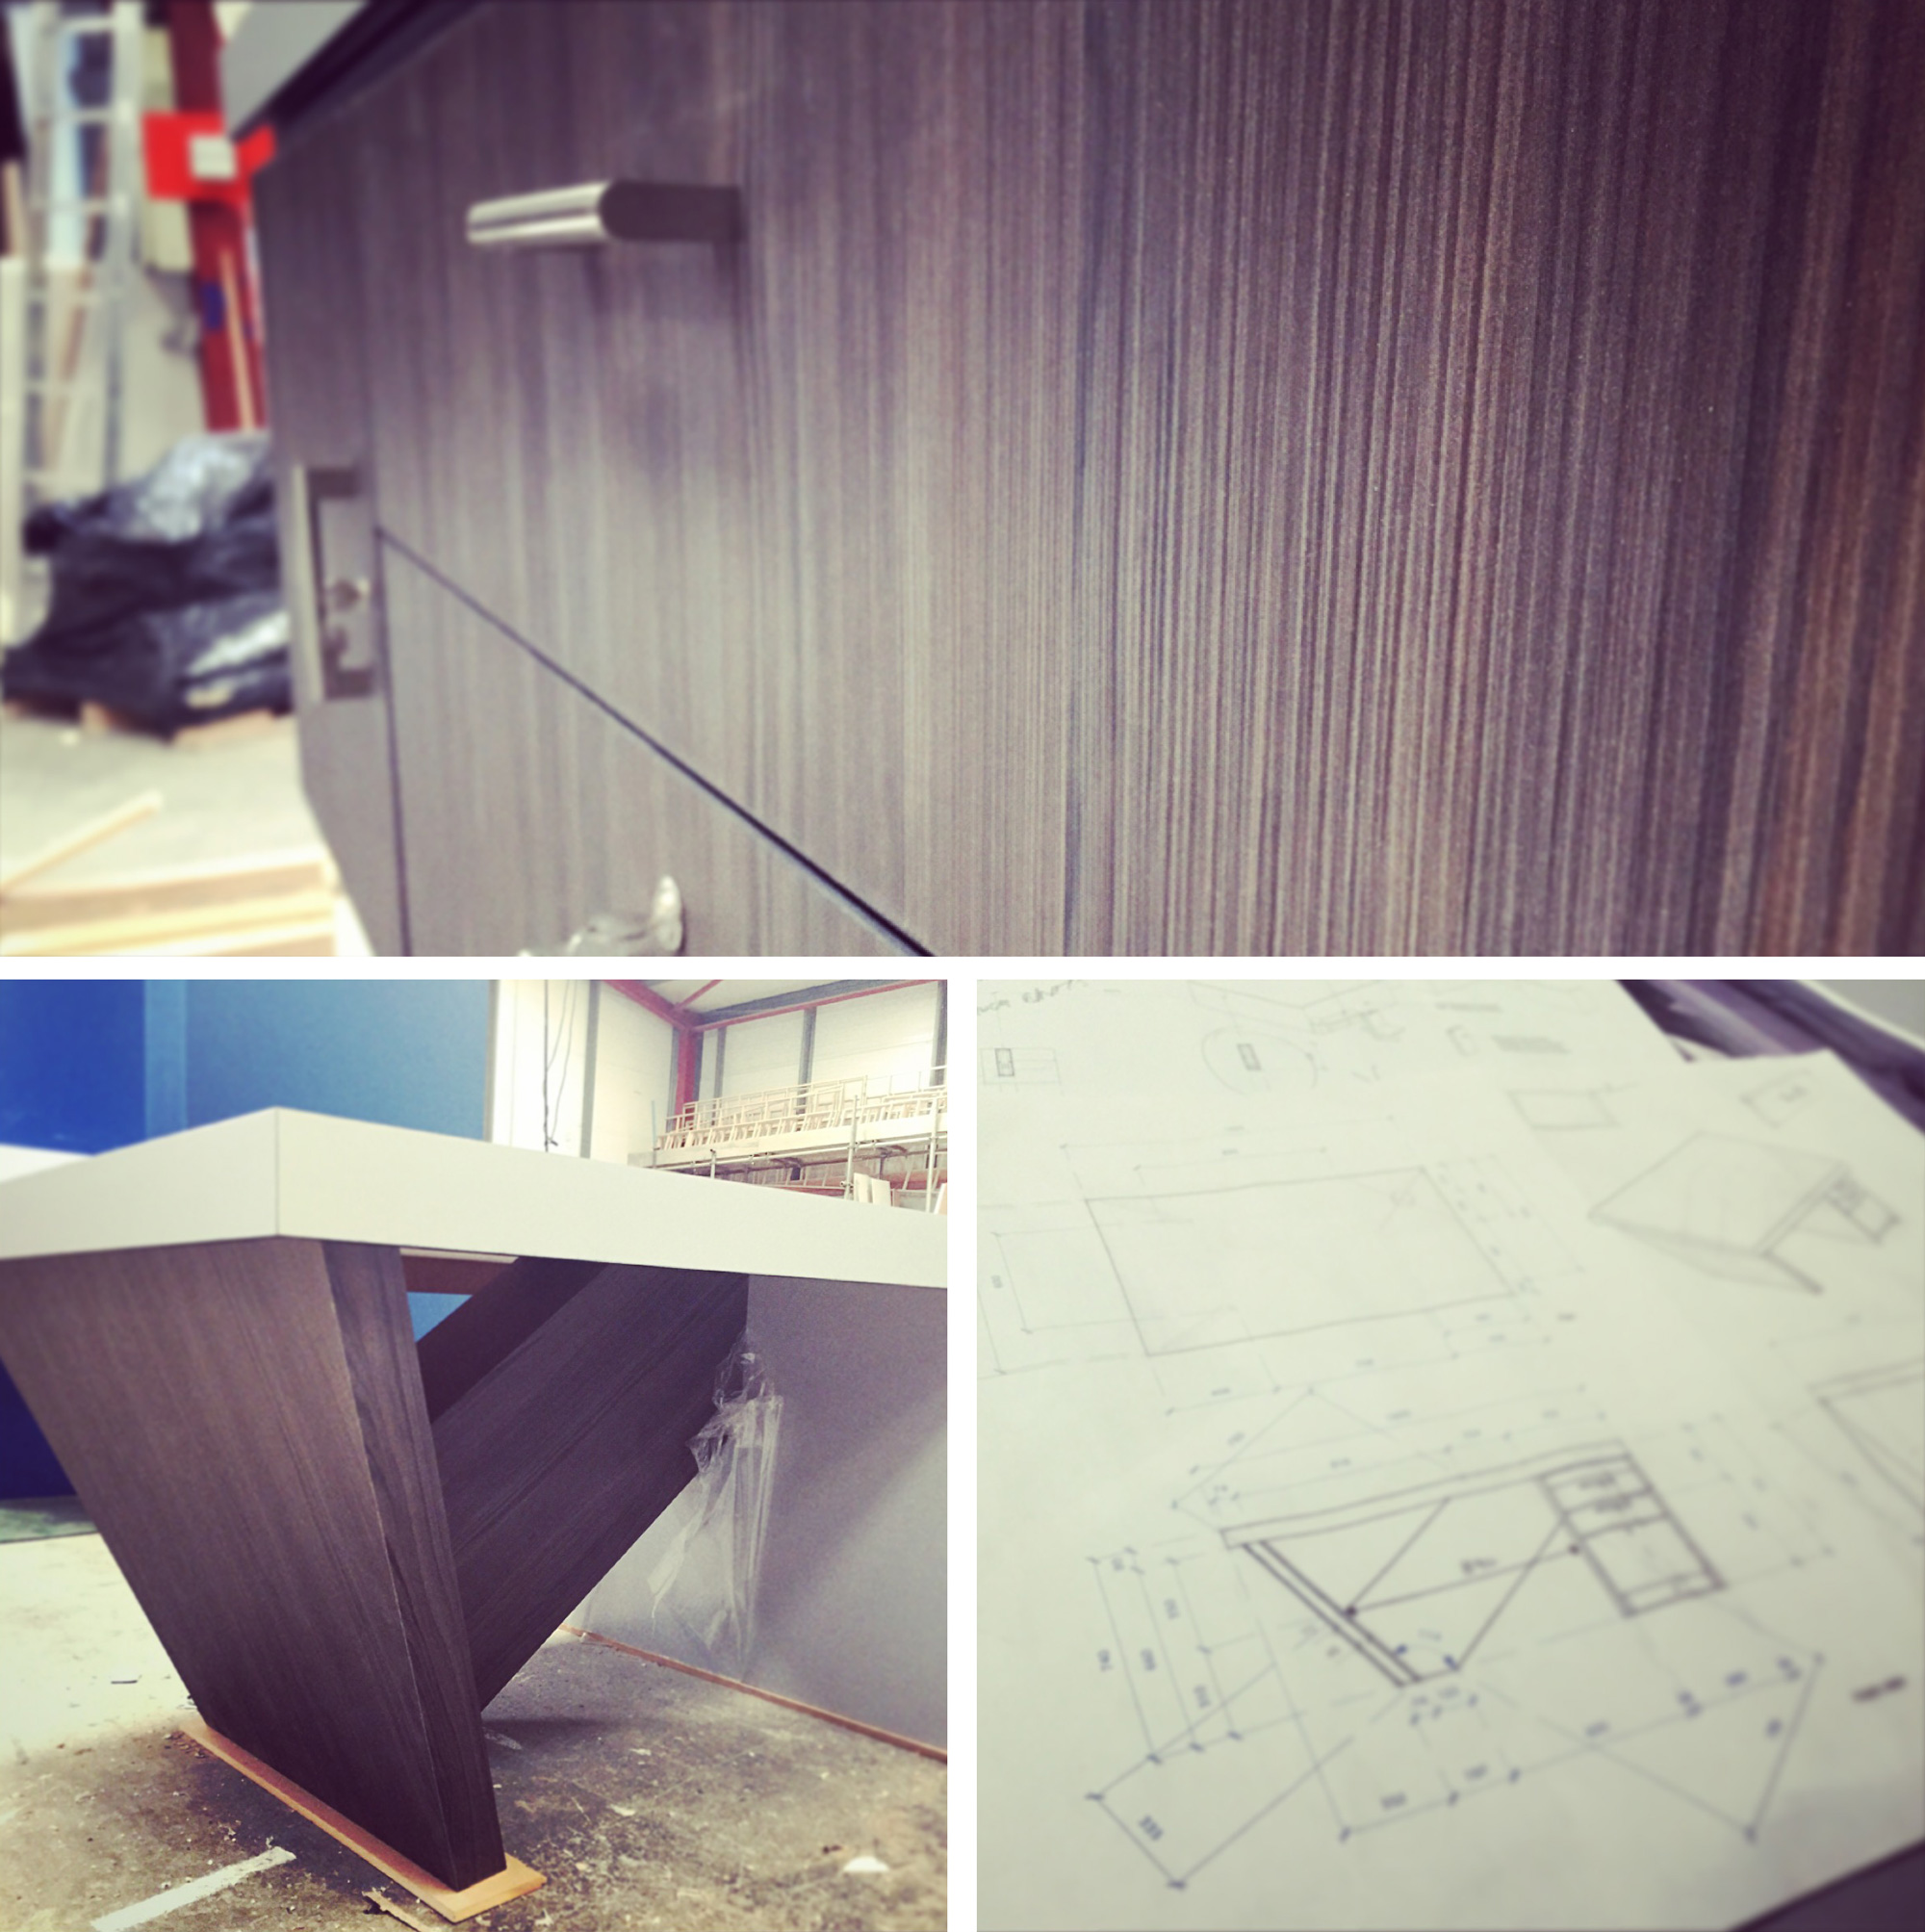 bespoke specialist joinery for angled executive desks